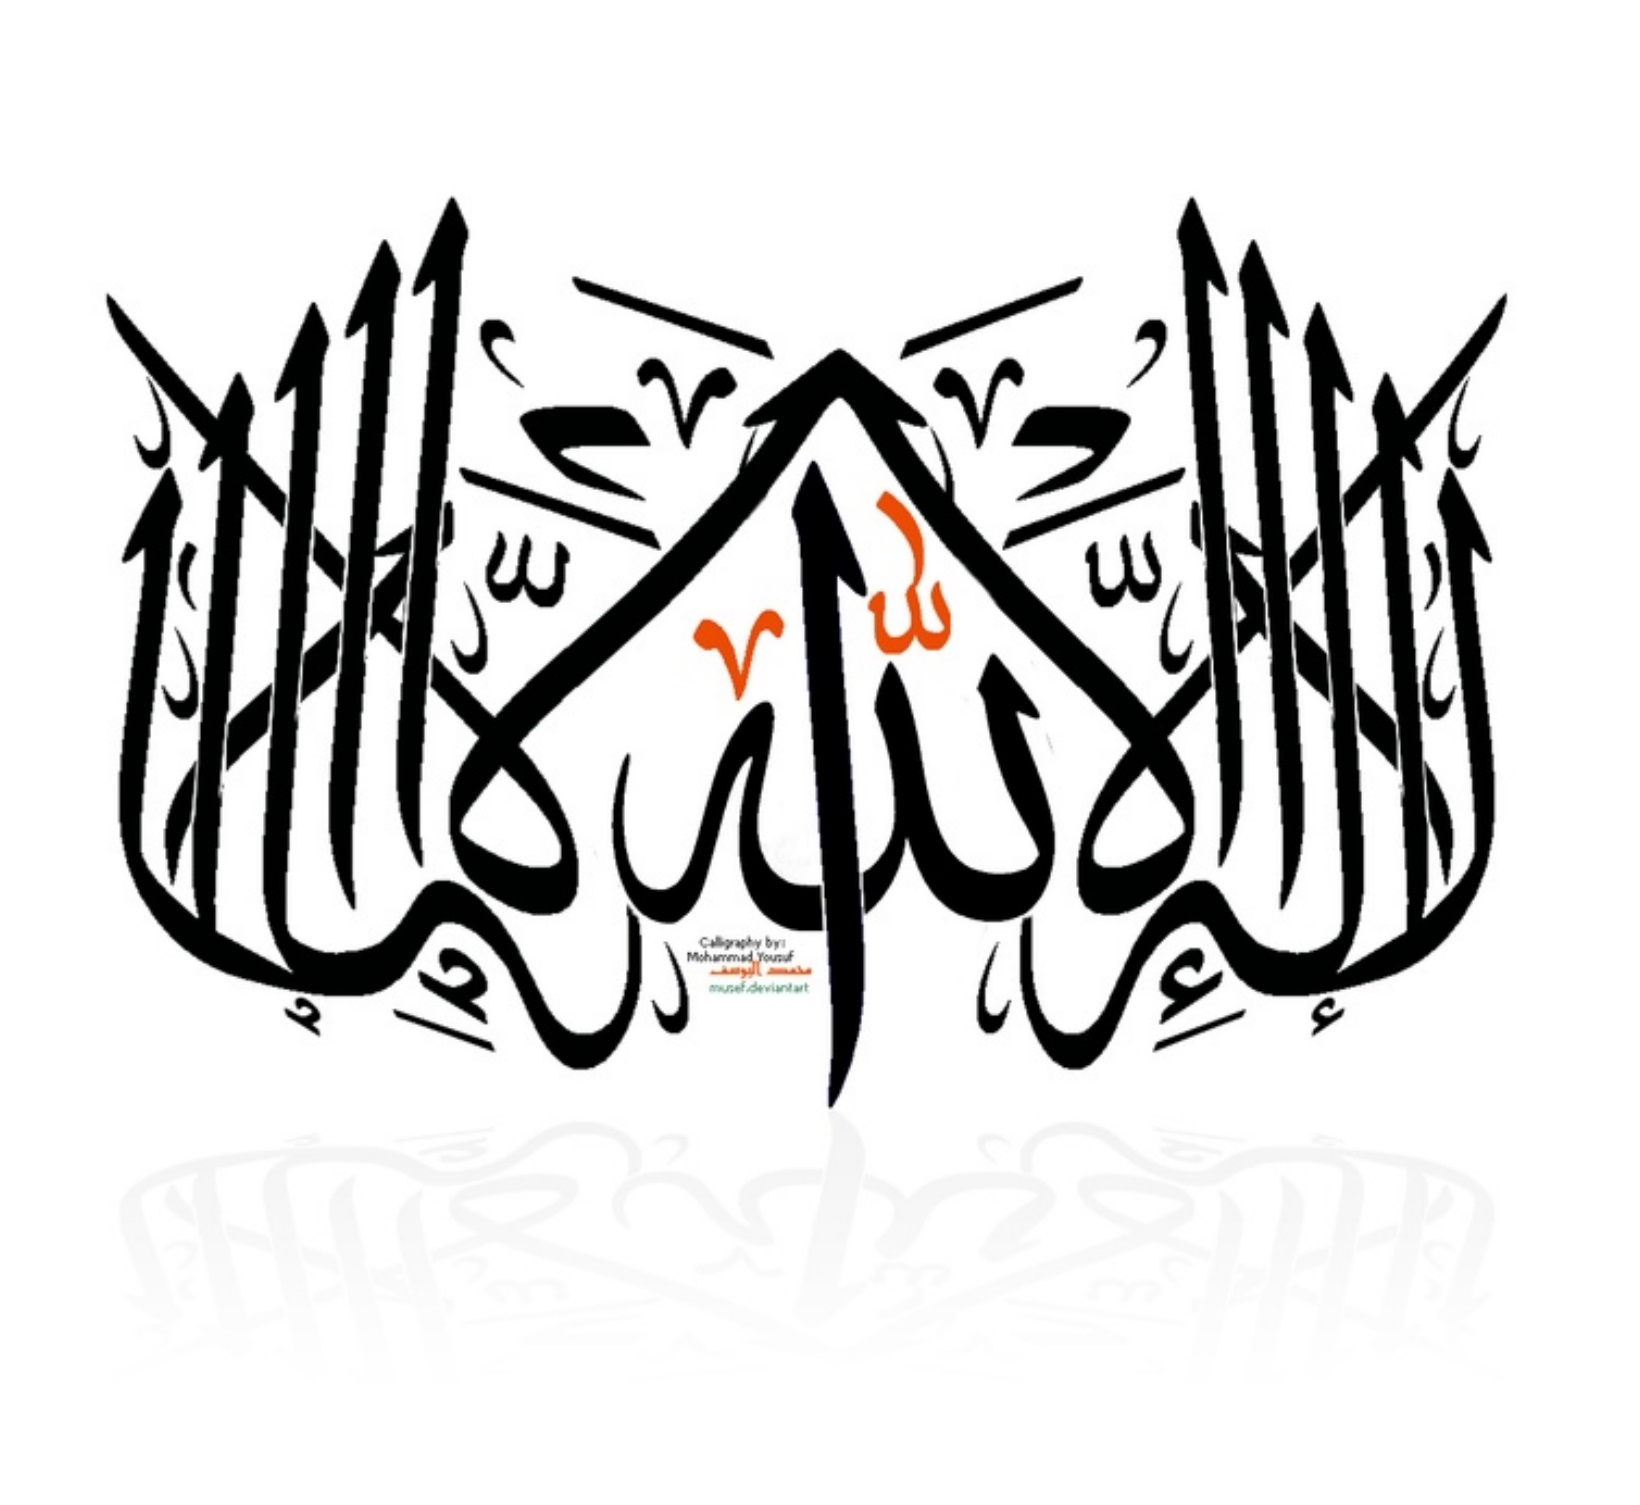 Kalma La ilaha illallah Muhammadur Rasulullah Wallpapers with Black background